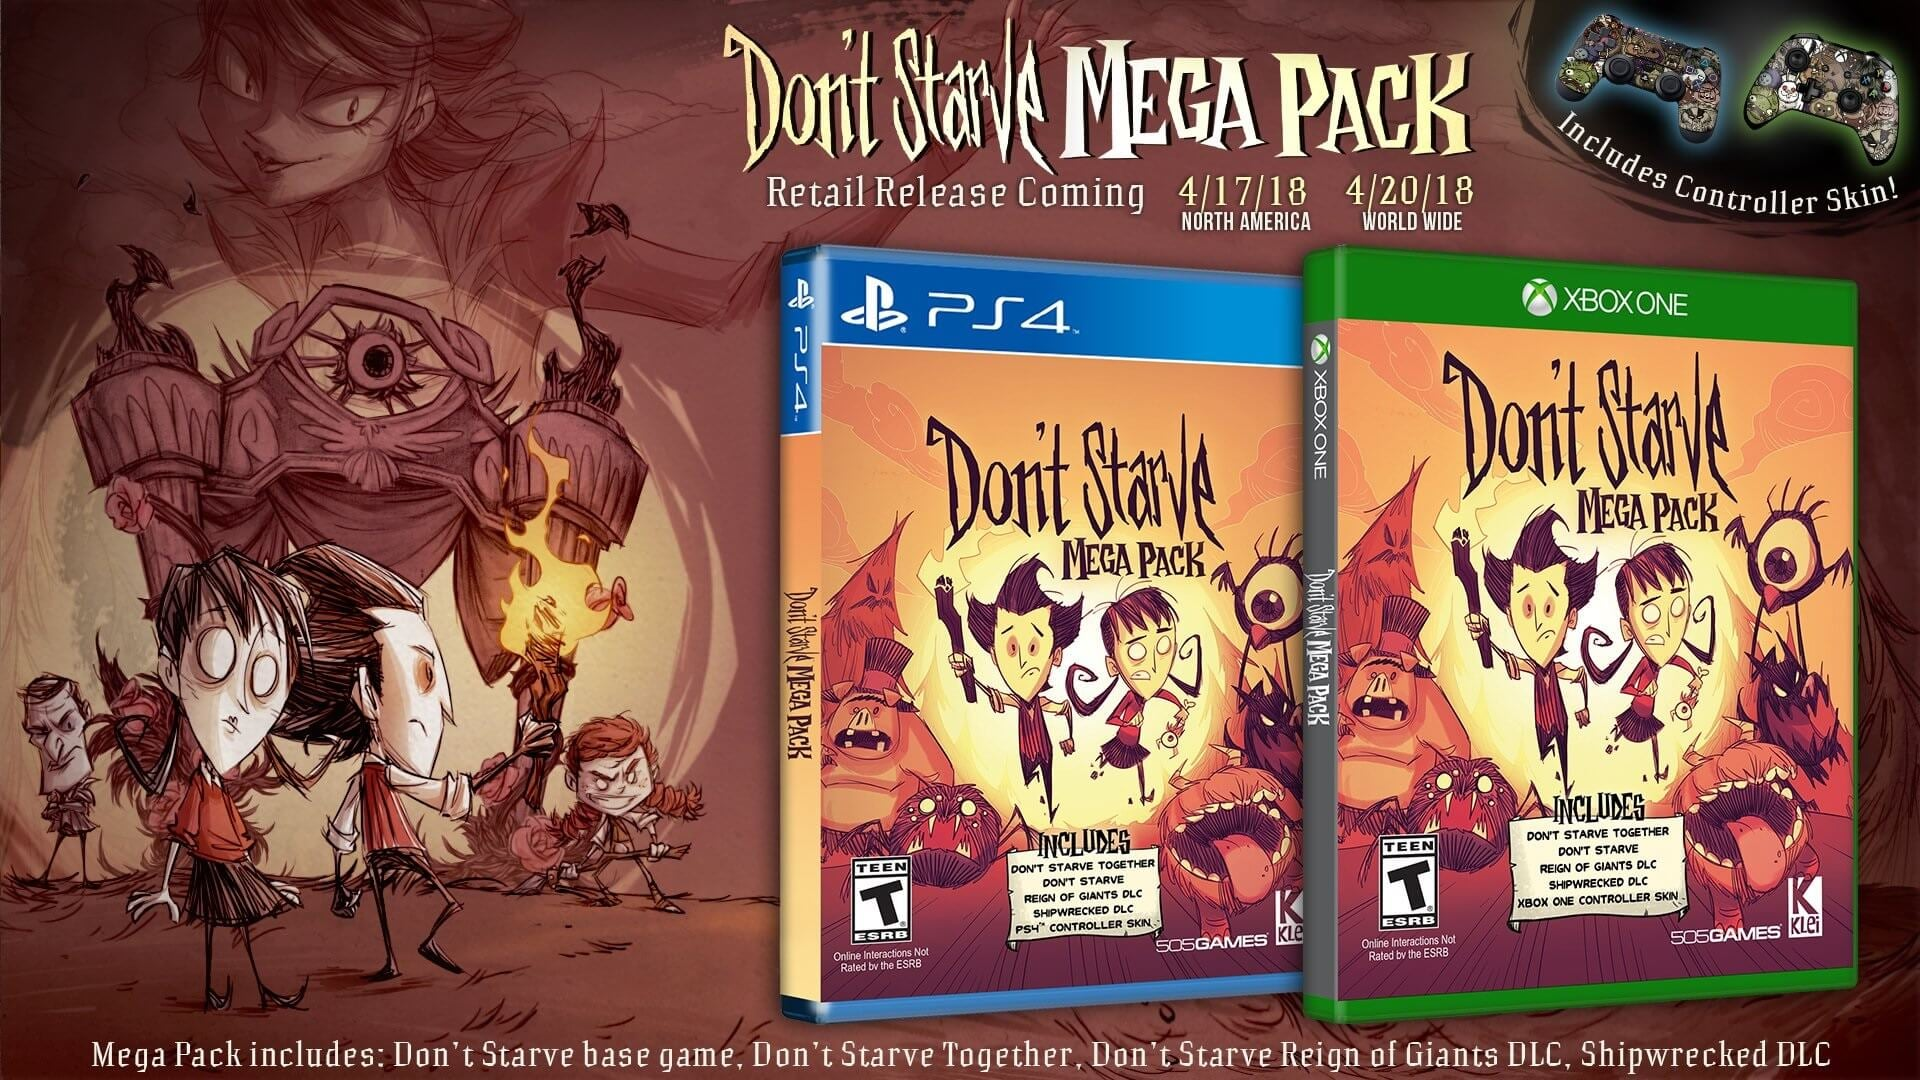 Dont Starve Mega Pack Retail Release Date Announced